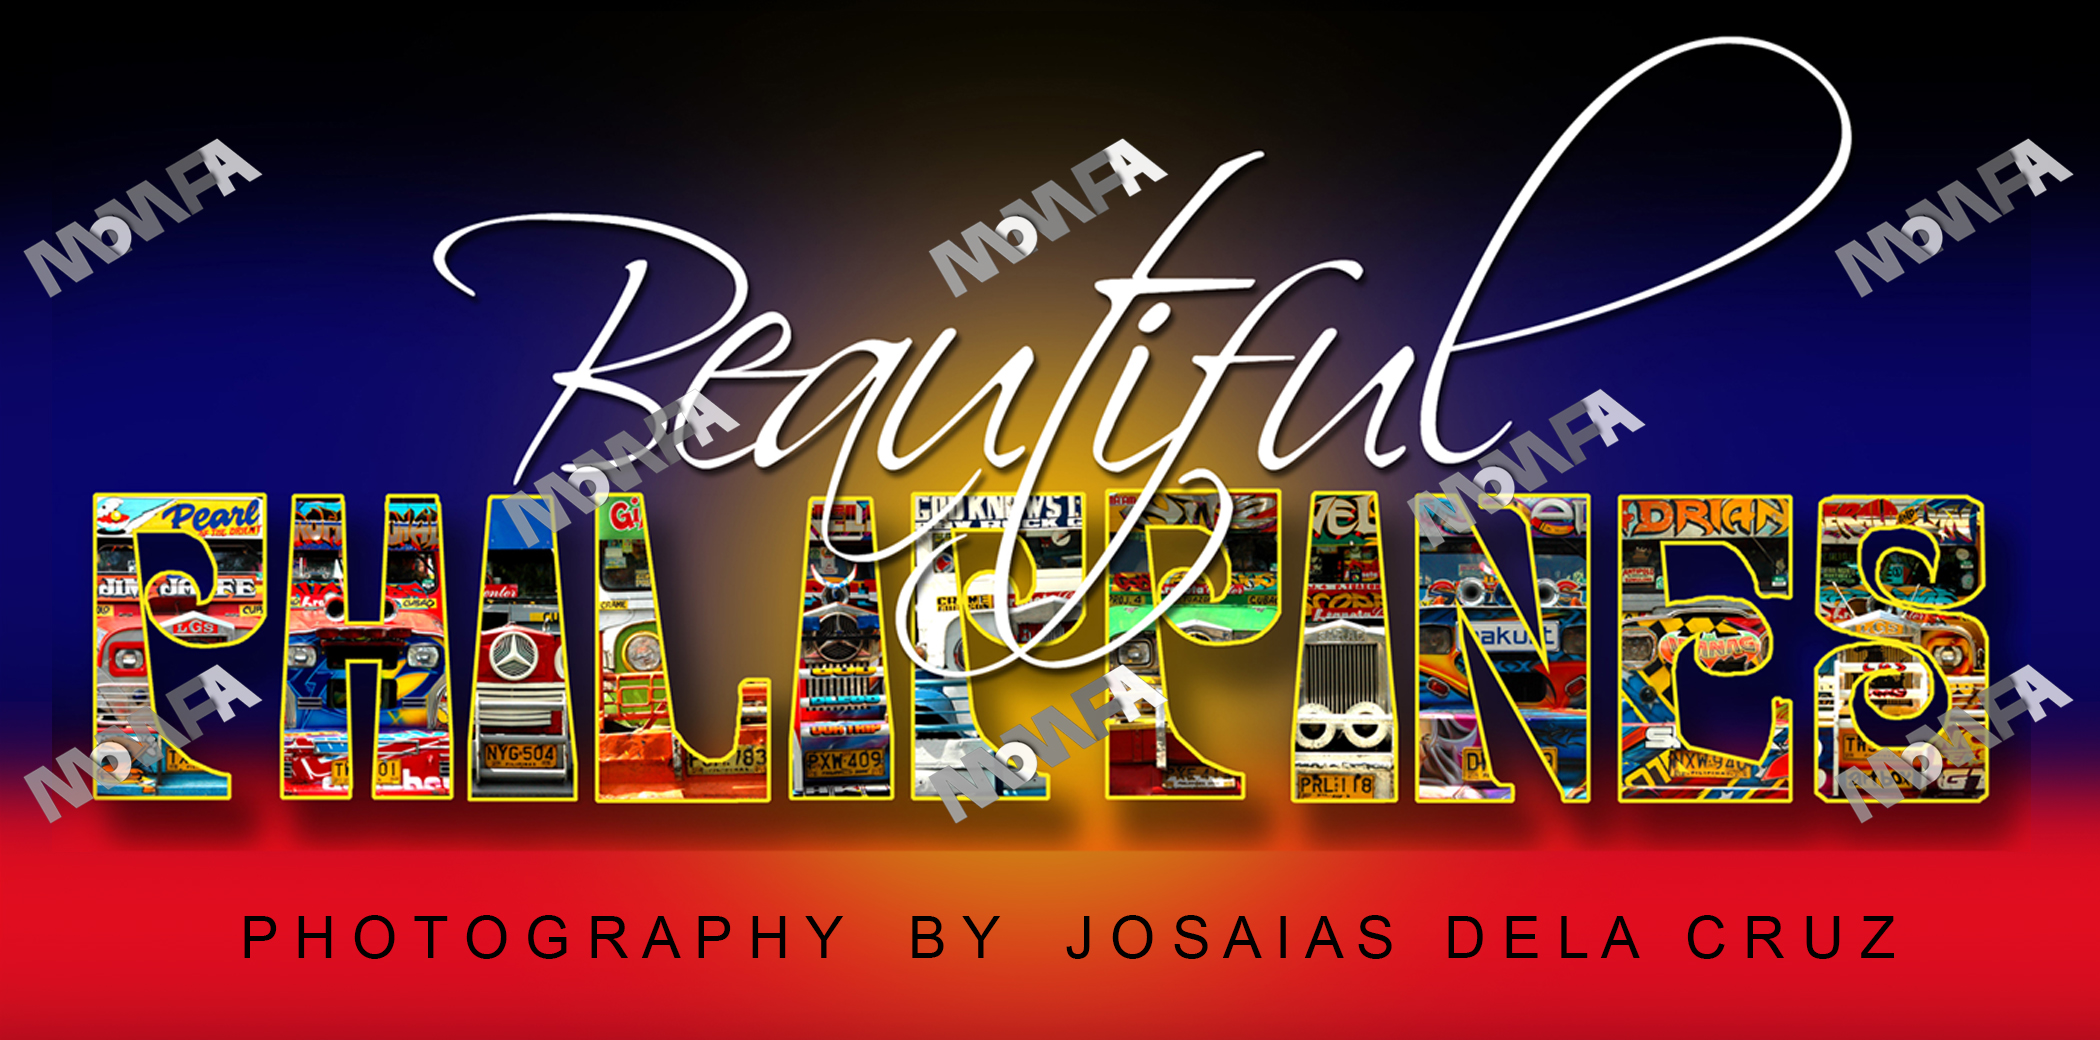 00 Cover Beautiful Philippines wmc.jpg